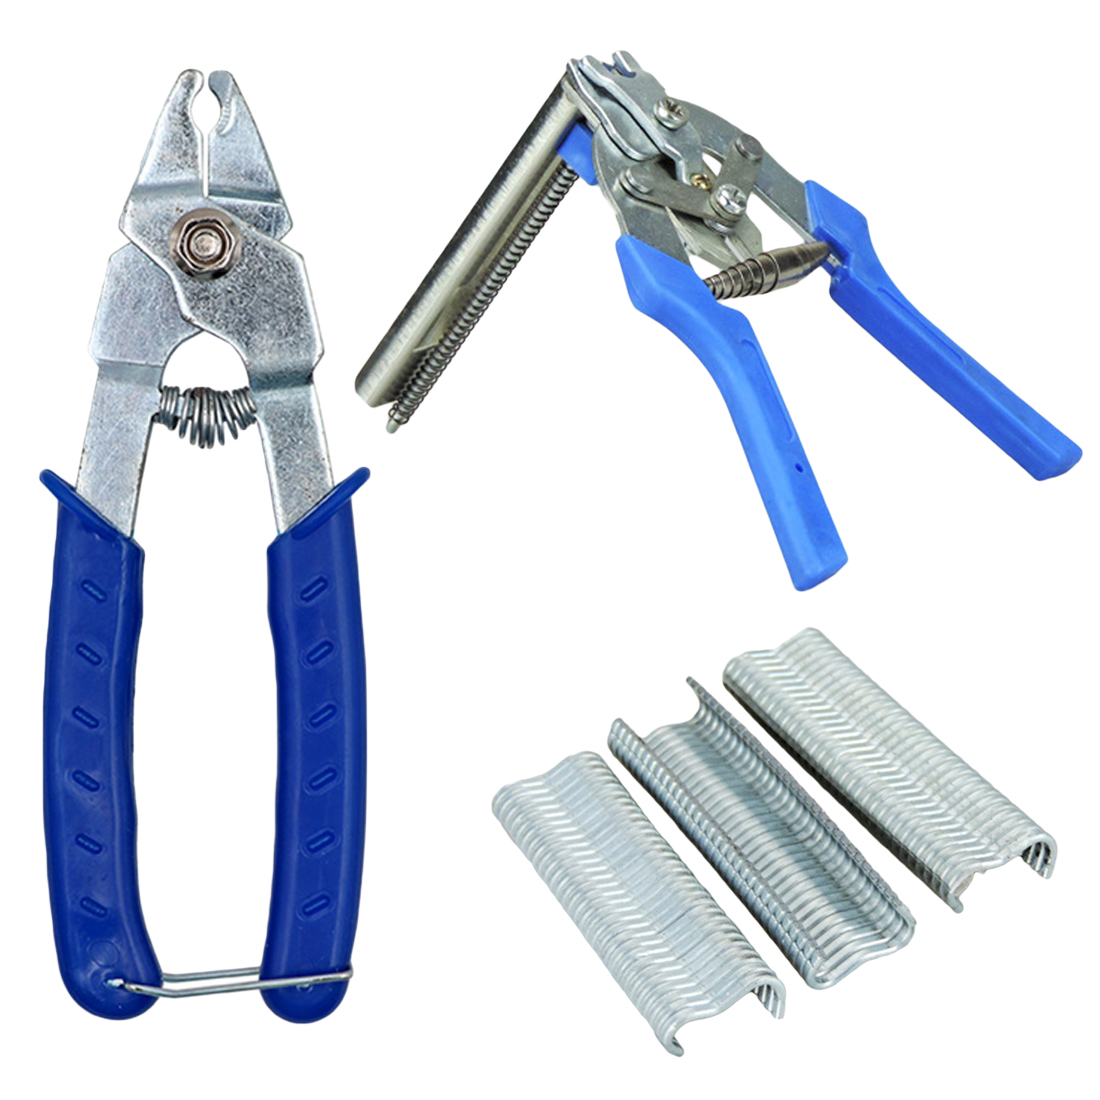 Hog Ring Plier Tool 600pcs M Clips Chicken Mesh Cage Wire Fencing Crimping Solder Joint Welding Repair Hand Tools